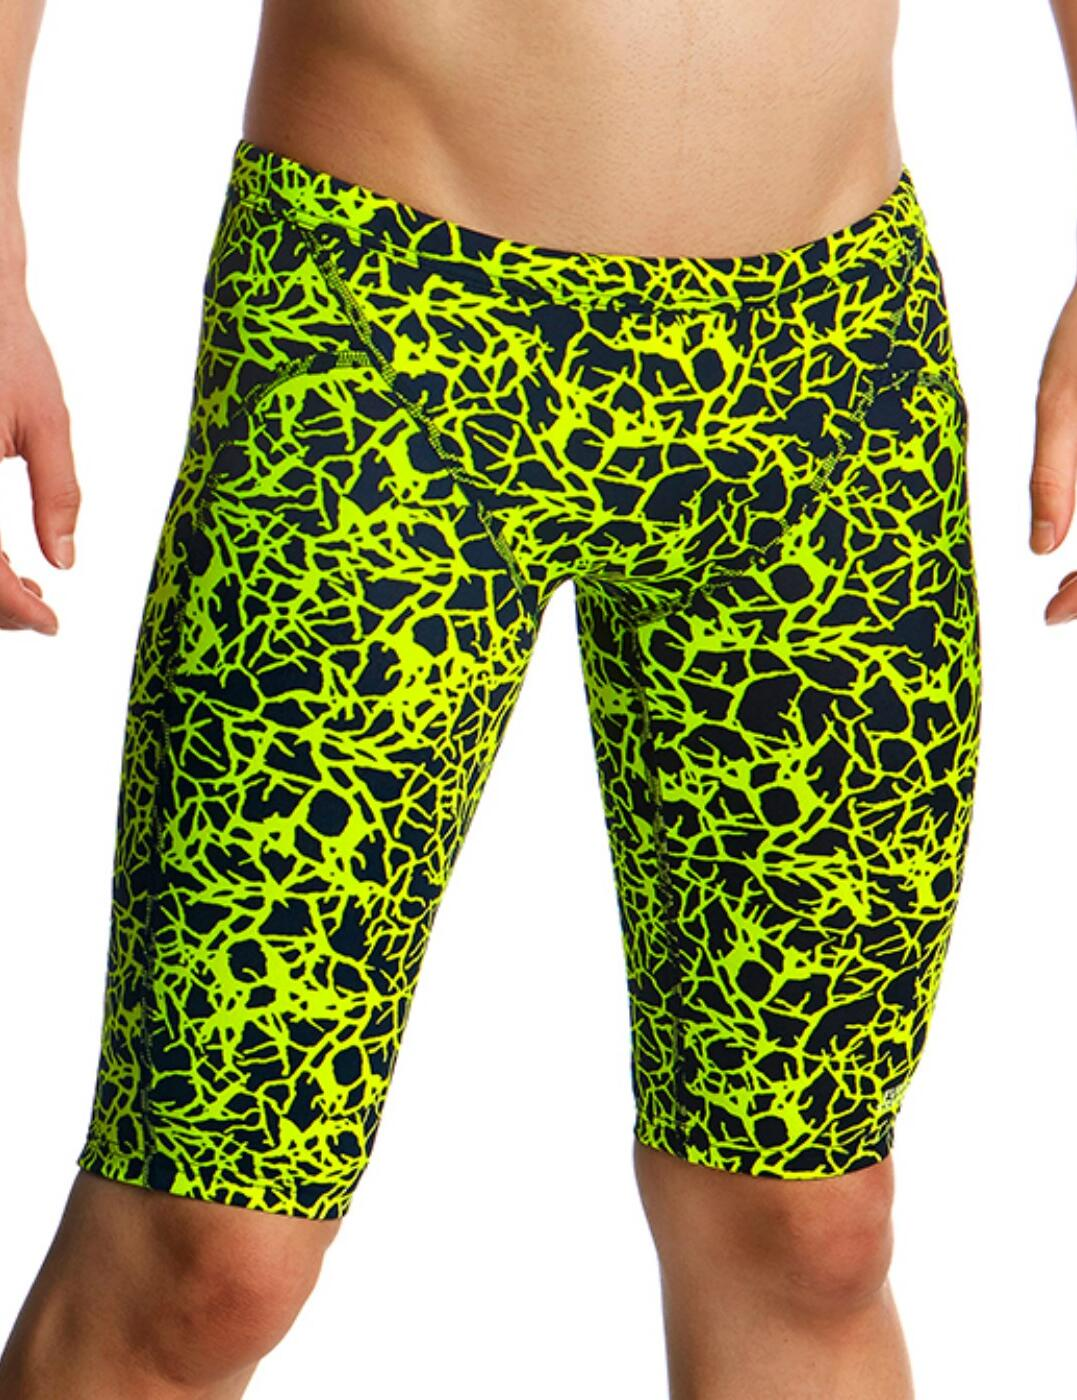 FT37B Funky Trunks Boys Training Jammers - FT37B01967 Coral Gold